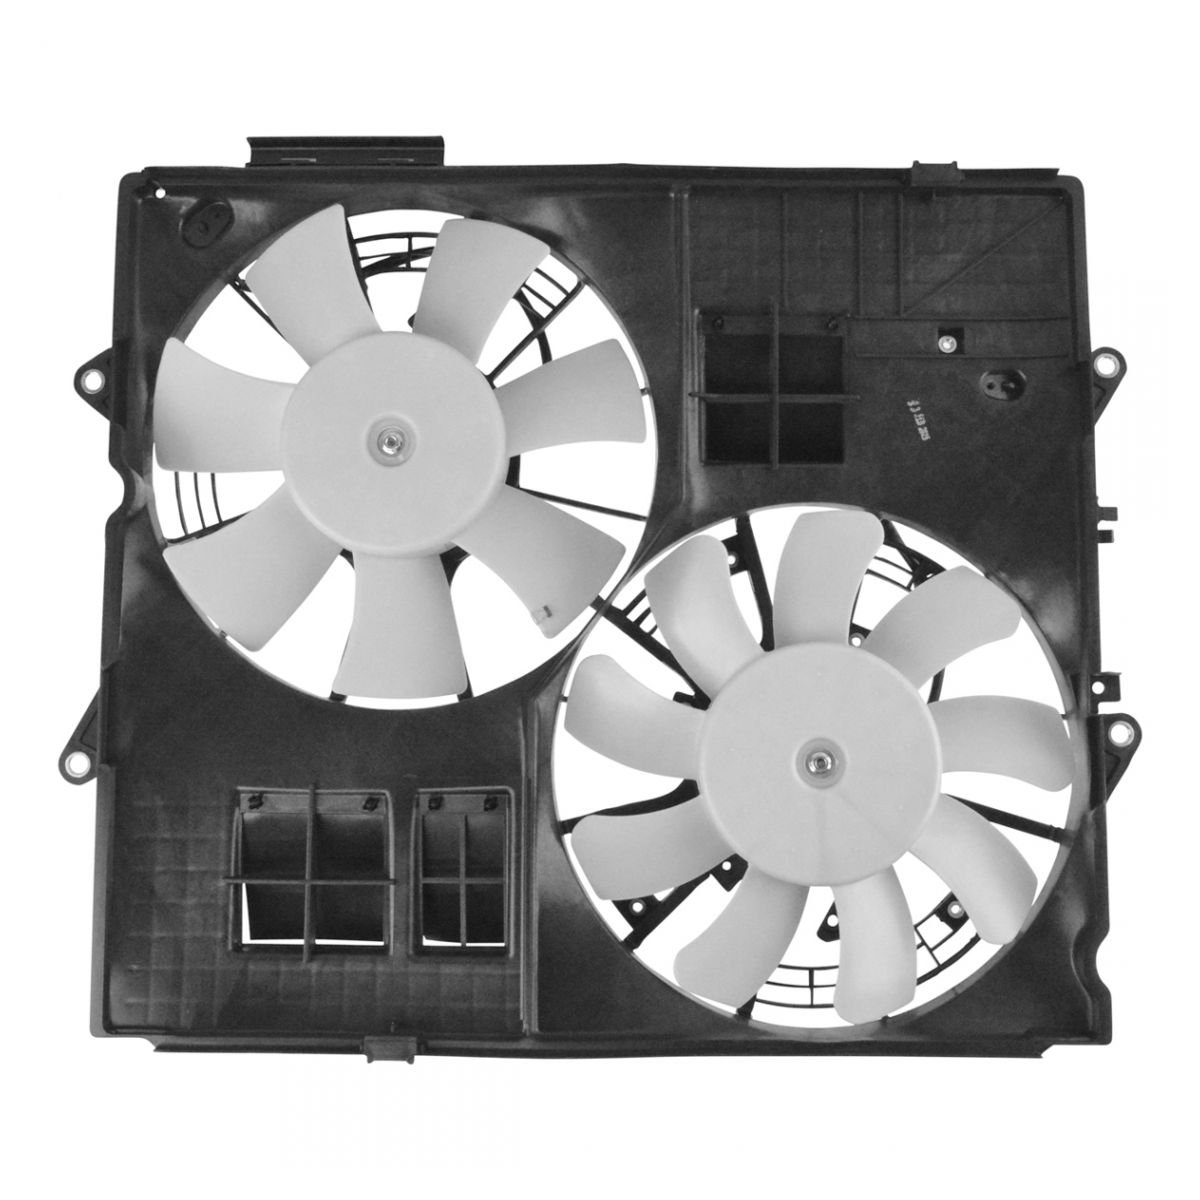 Radiator Dual Cooling Fan Assembly for Cadillac CTS-V 6.2L Supercharged AM Autoparts